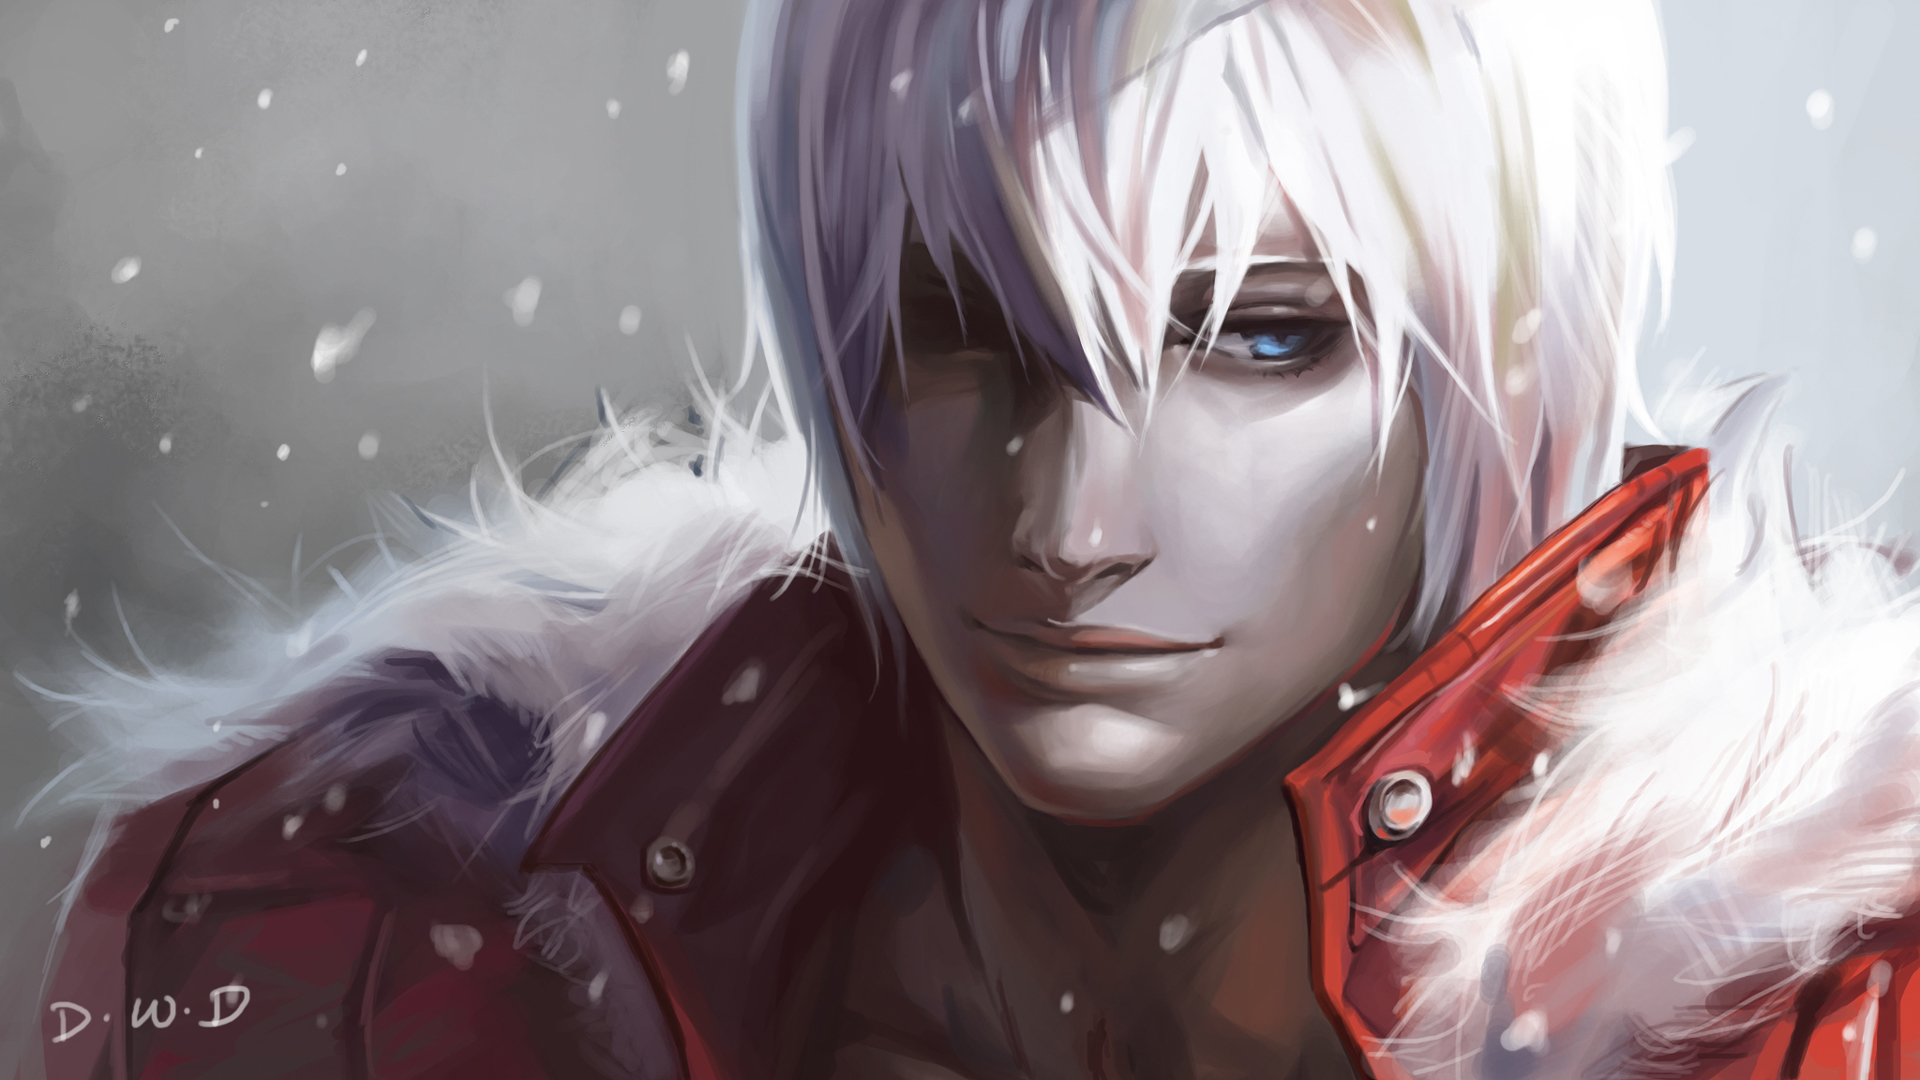 Download Dante Devil May Cry Image